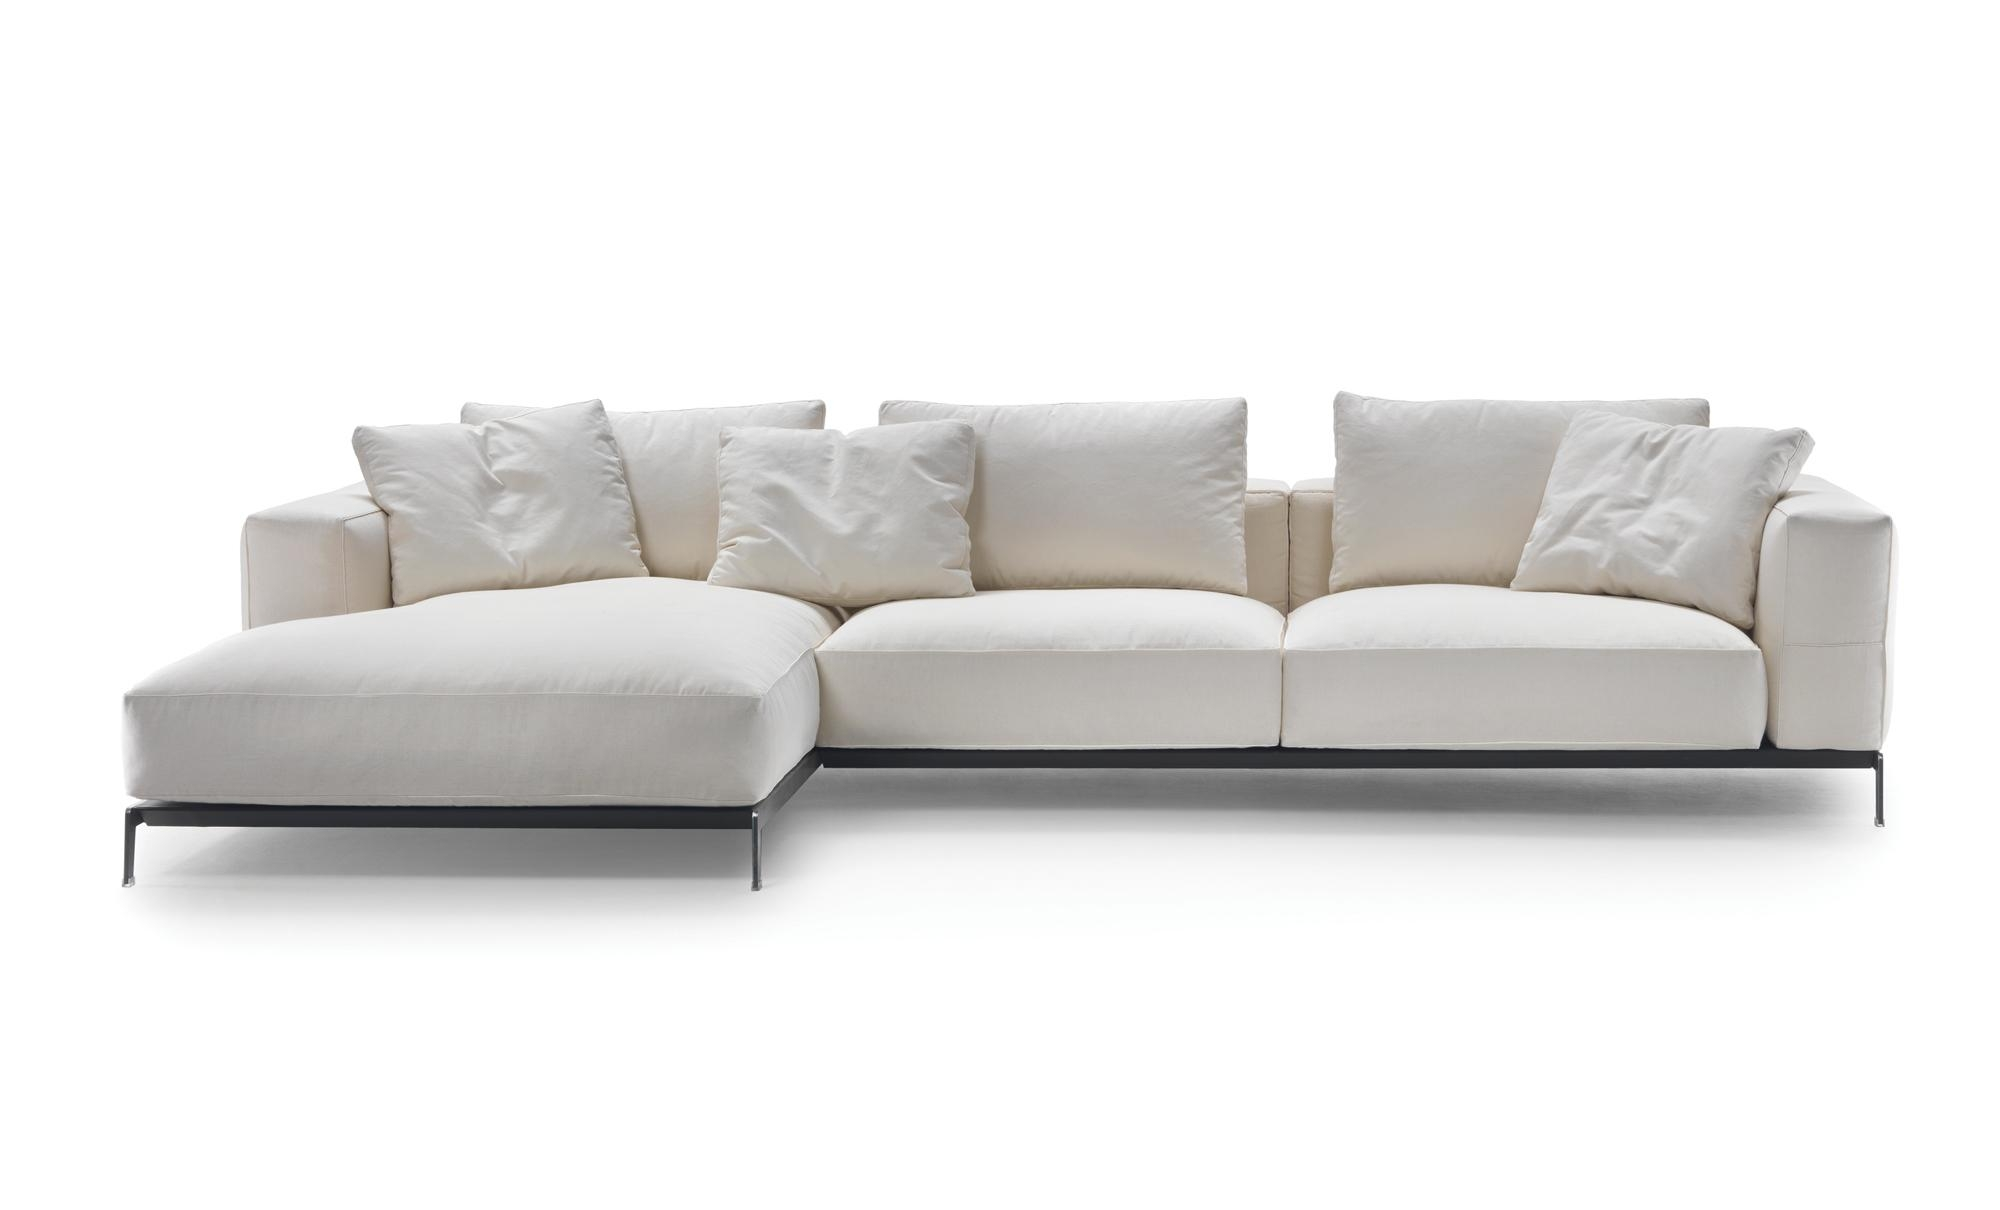 Modular Couches With Regard To Modular Sofas (Image 7 of 20)